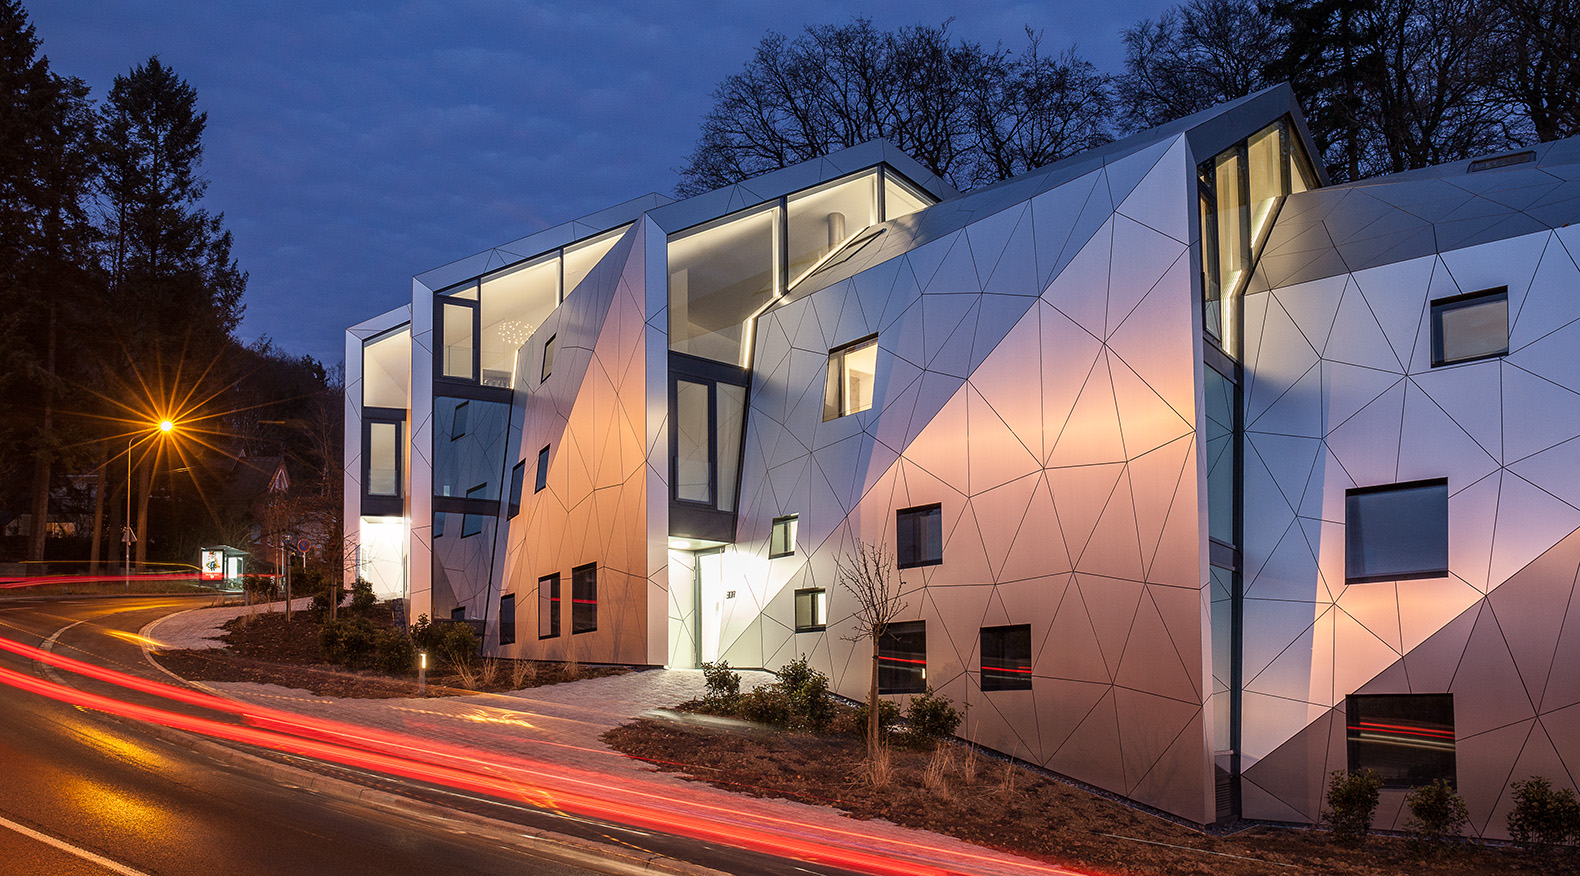 This futuristic metal-clad residence is segmented like a lobster tail